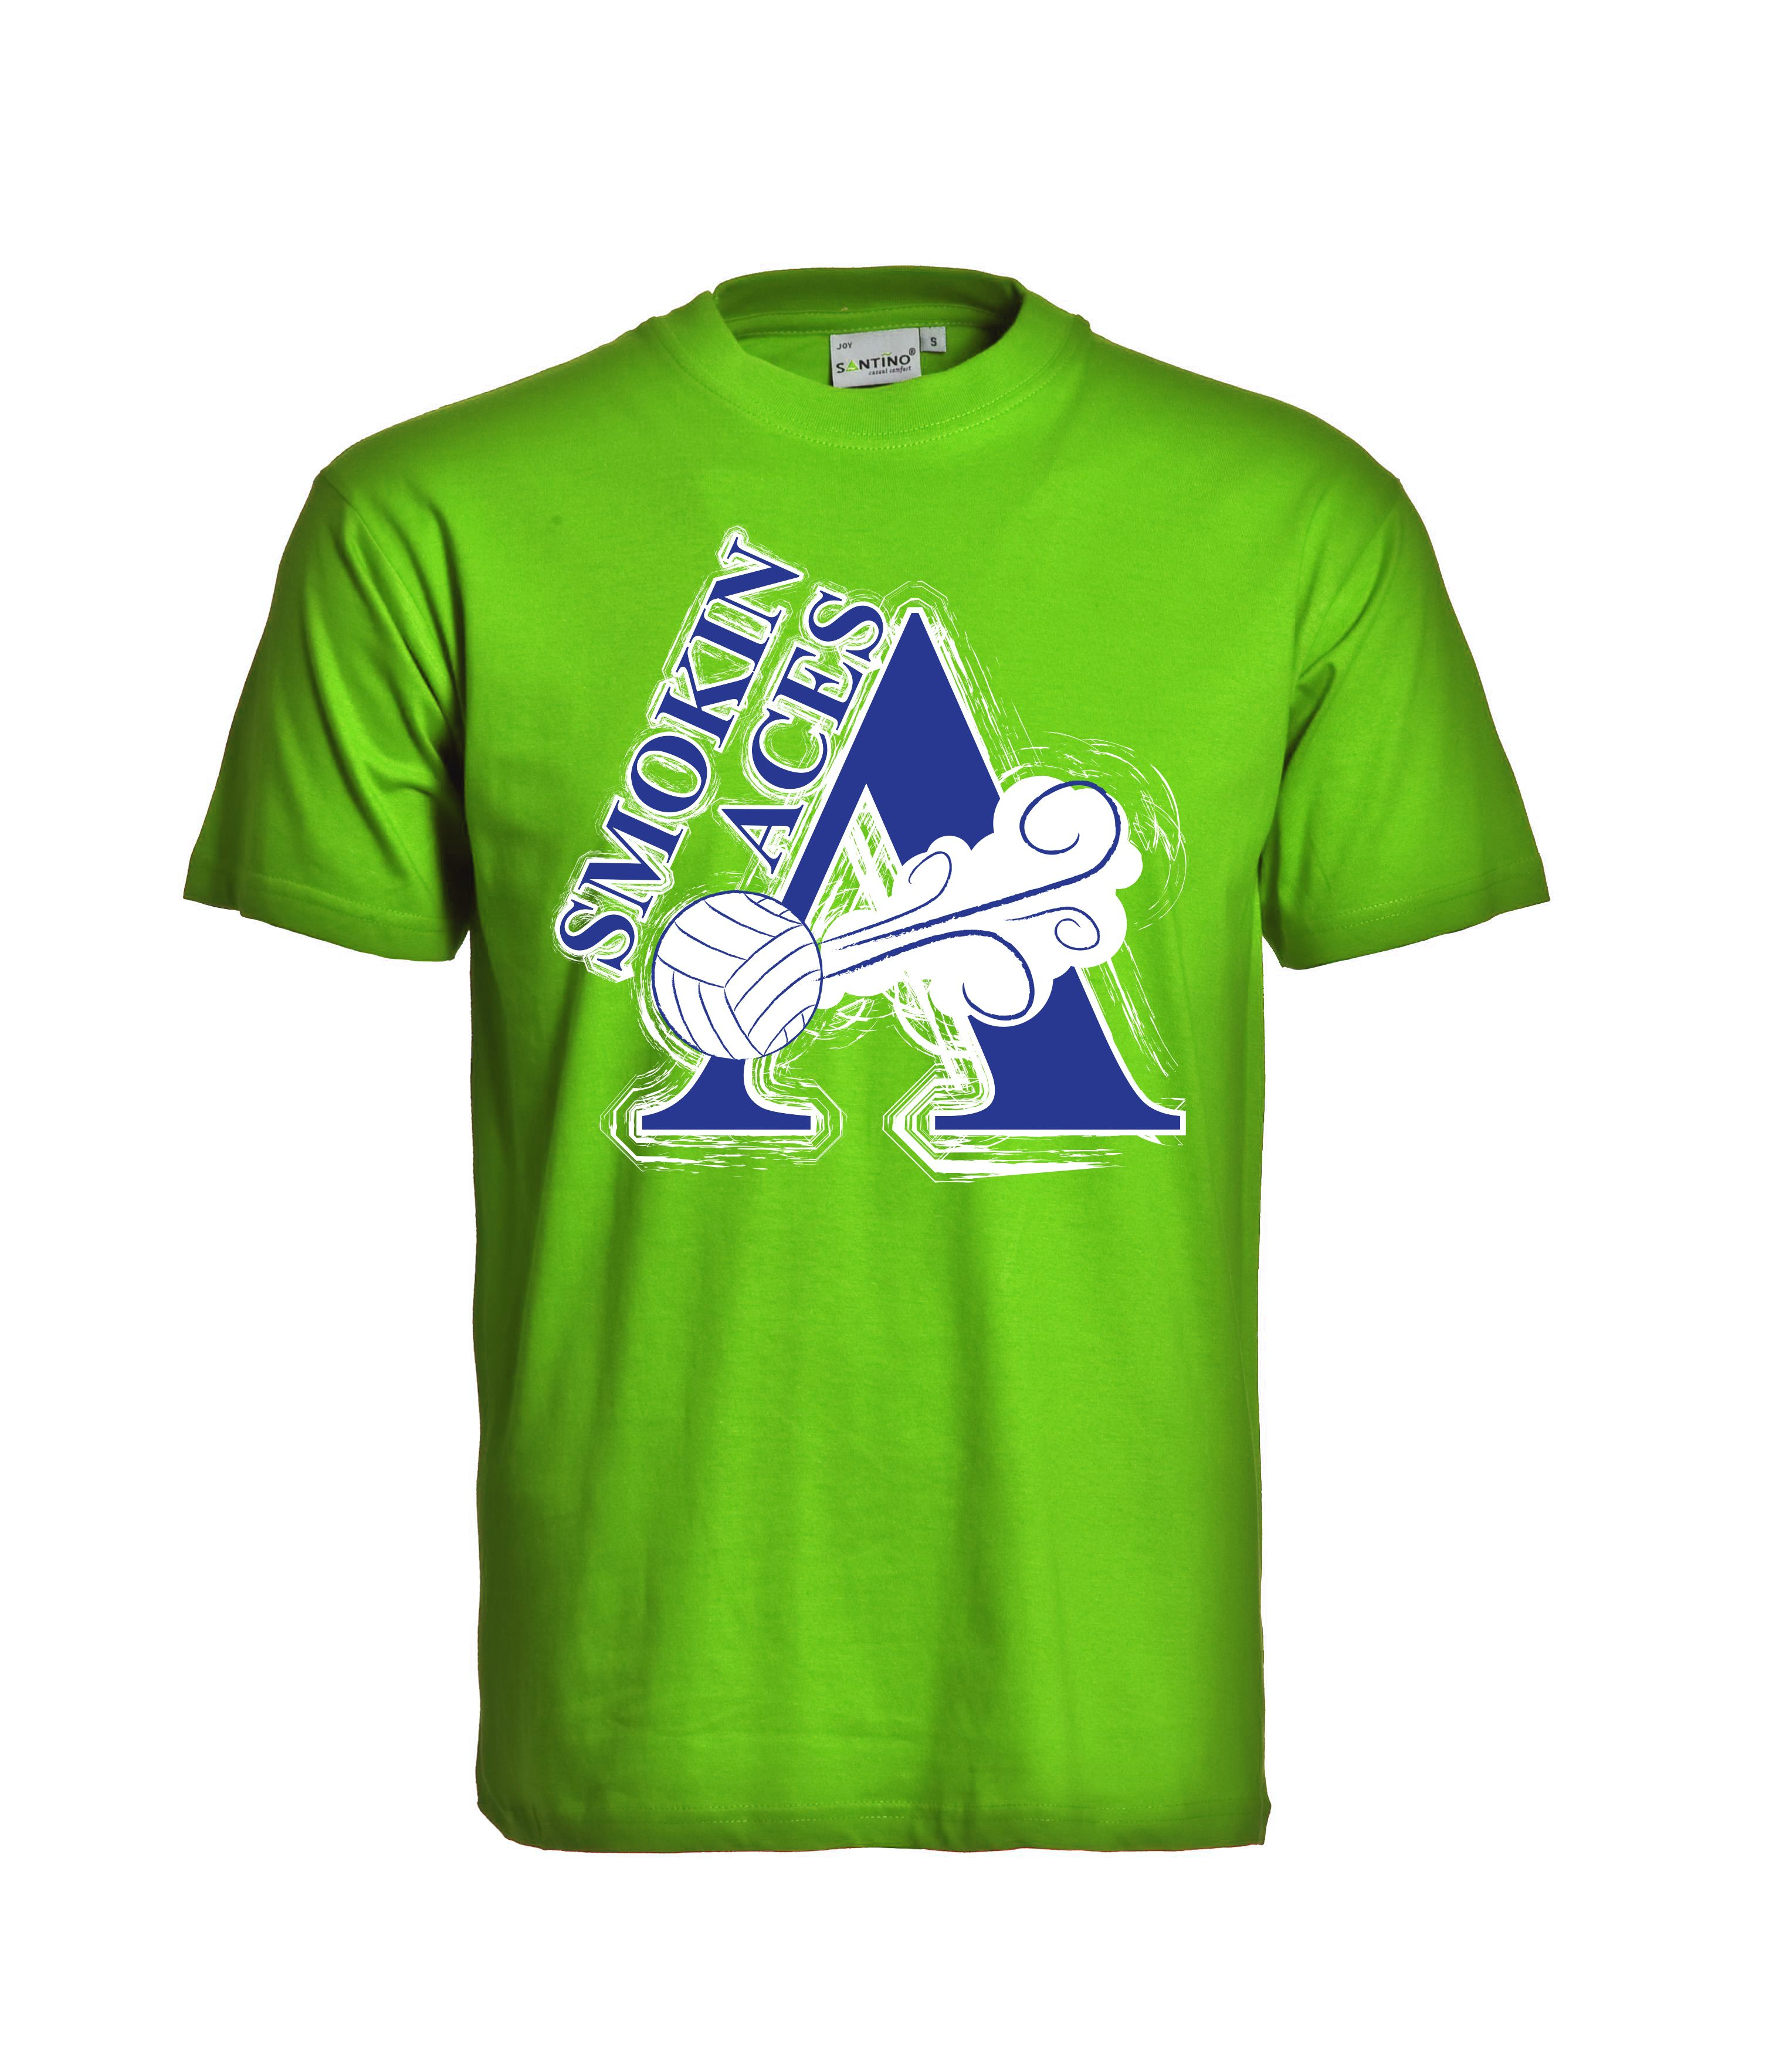 Smokin Aces Volleyball 2010 Mens Tops Mens Tshirts T Shirt